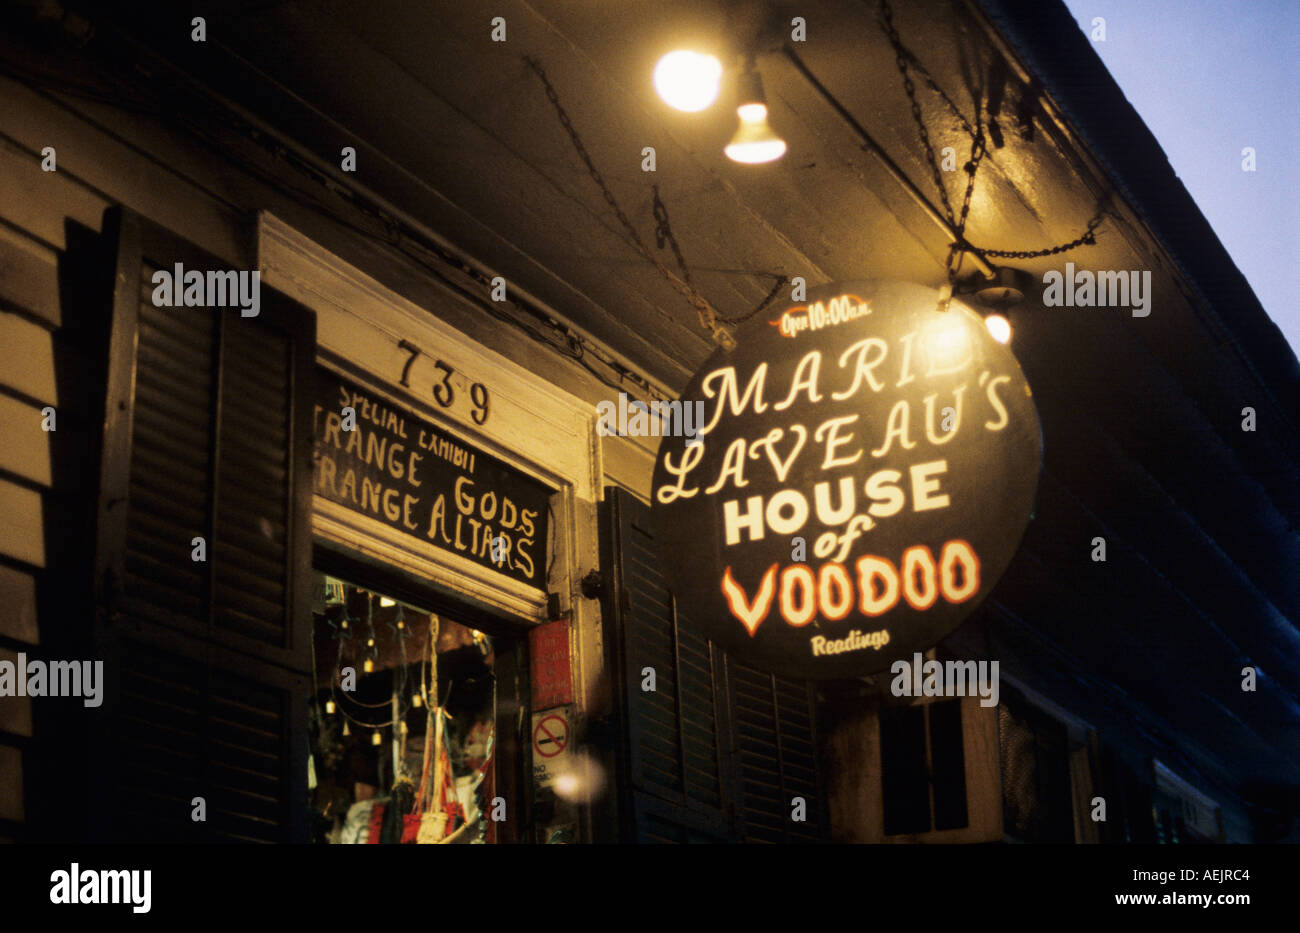 Marie Laveau House of Voodoo French Quarter New Orleans USA - Stock Image